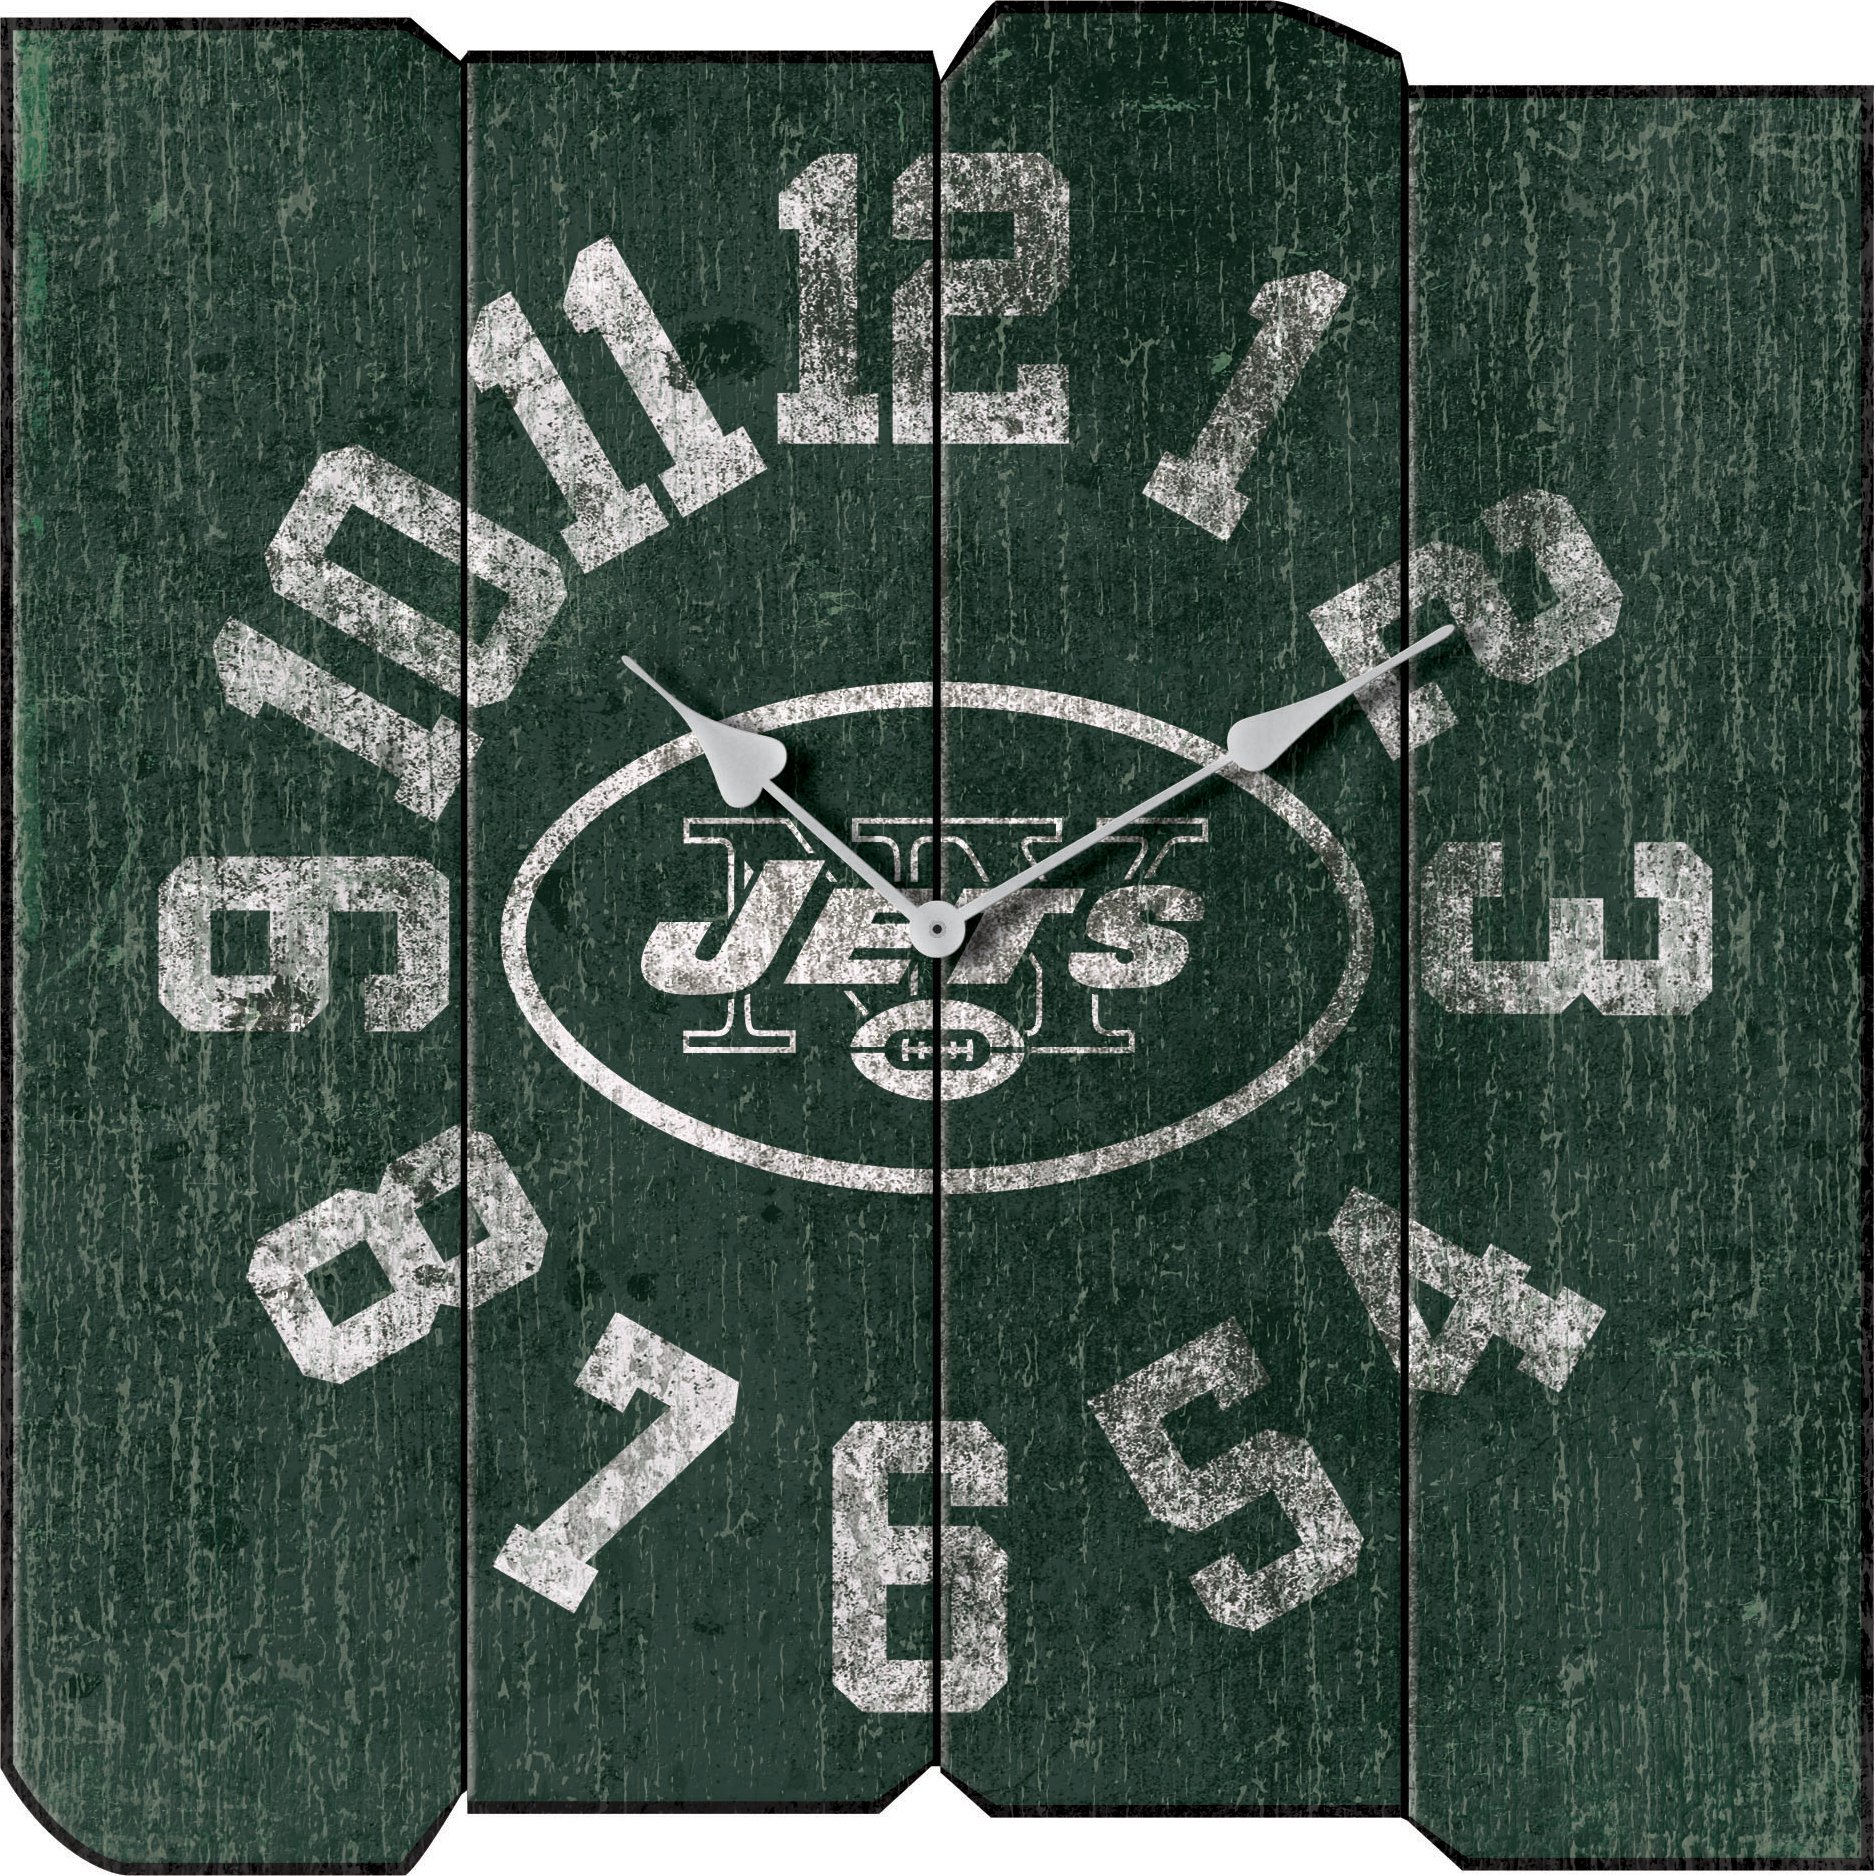 Imperial Officially Licensed NFL Merchandise: Vintage Square Clock, New York Jets by Imperial